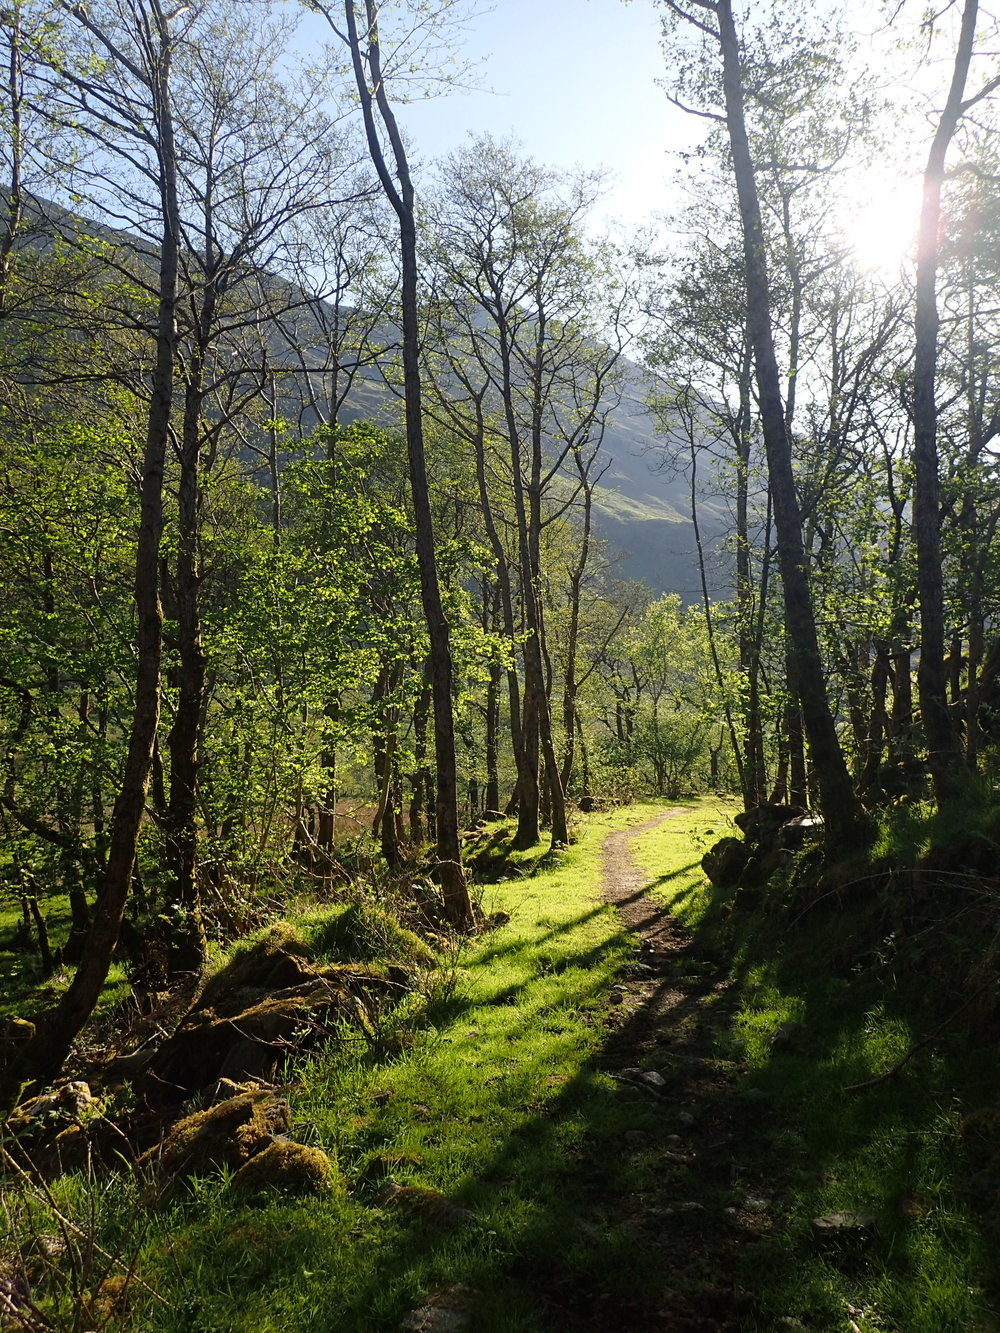 Five Sister and The Brothers of Kintail - May 24, 2018